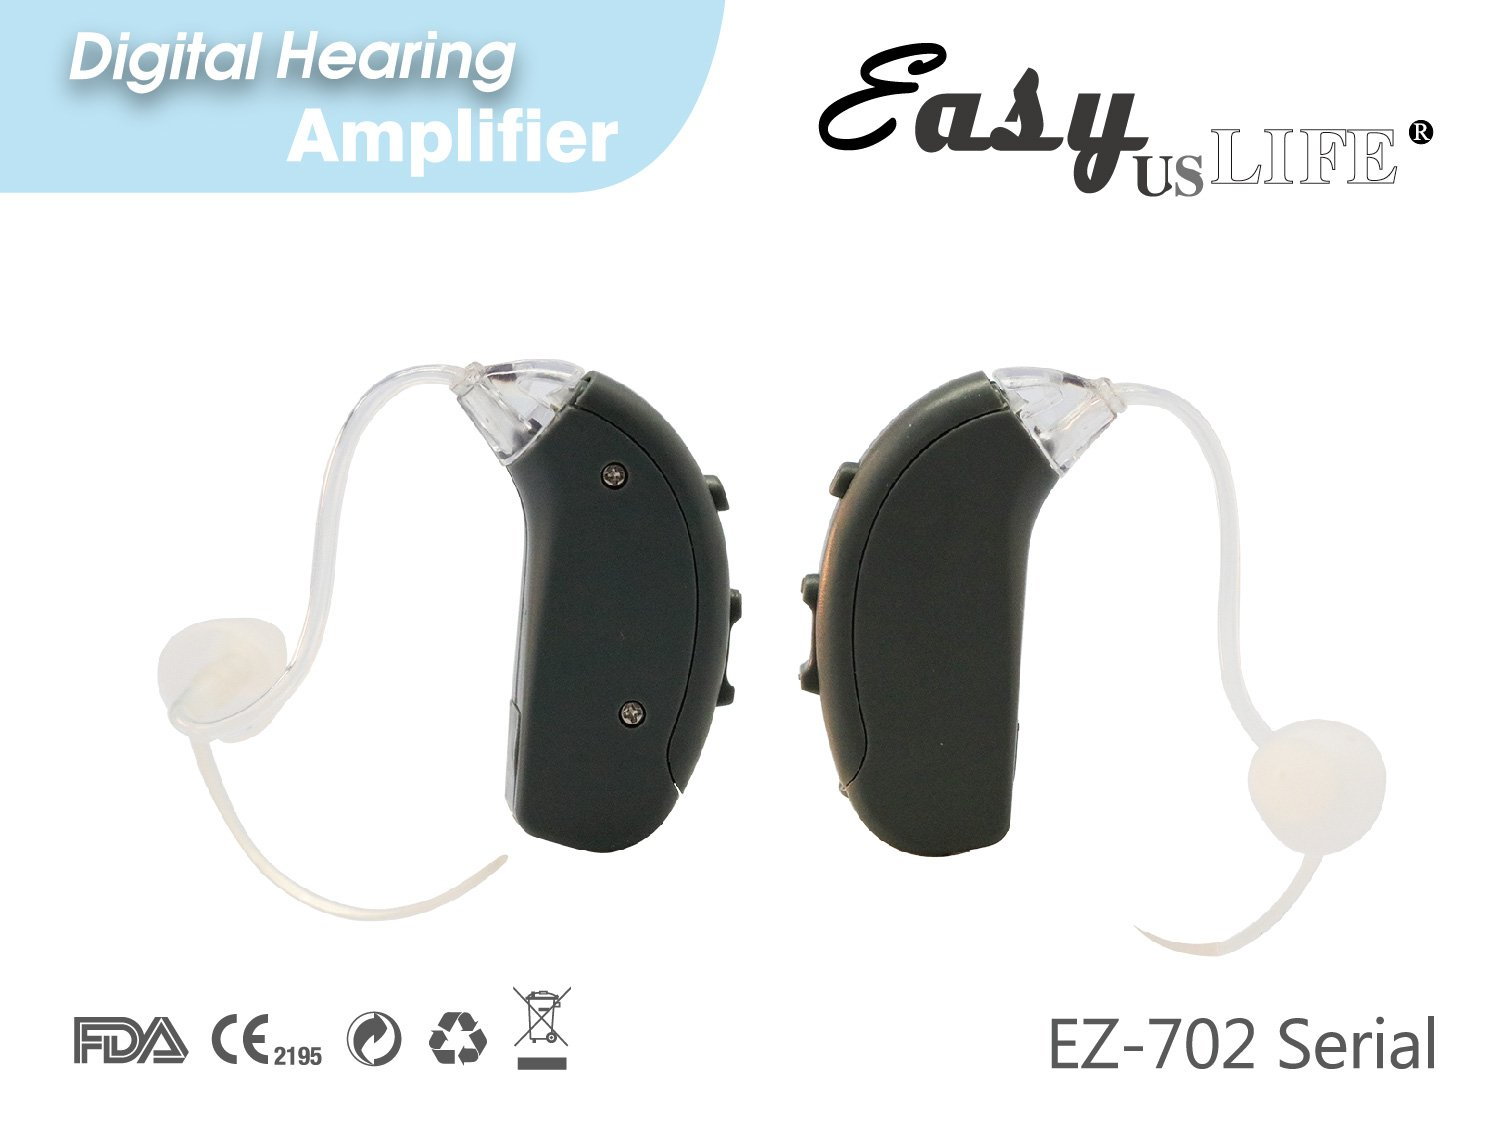 Easyuslife Ear Amplifiers Set Of 2 Hearing Amplifiers Dark Gray Devices With Digital Noise Cancellation , Discreet and Lightweight Ear Amplifying Machine With Volume and Frequency Control System